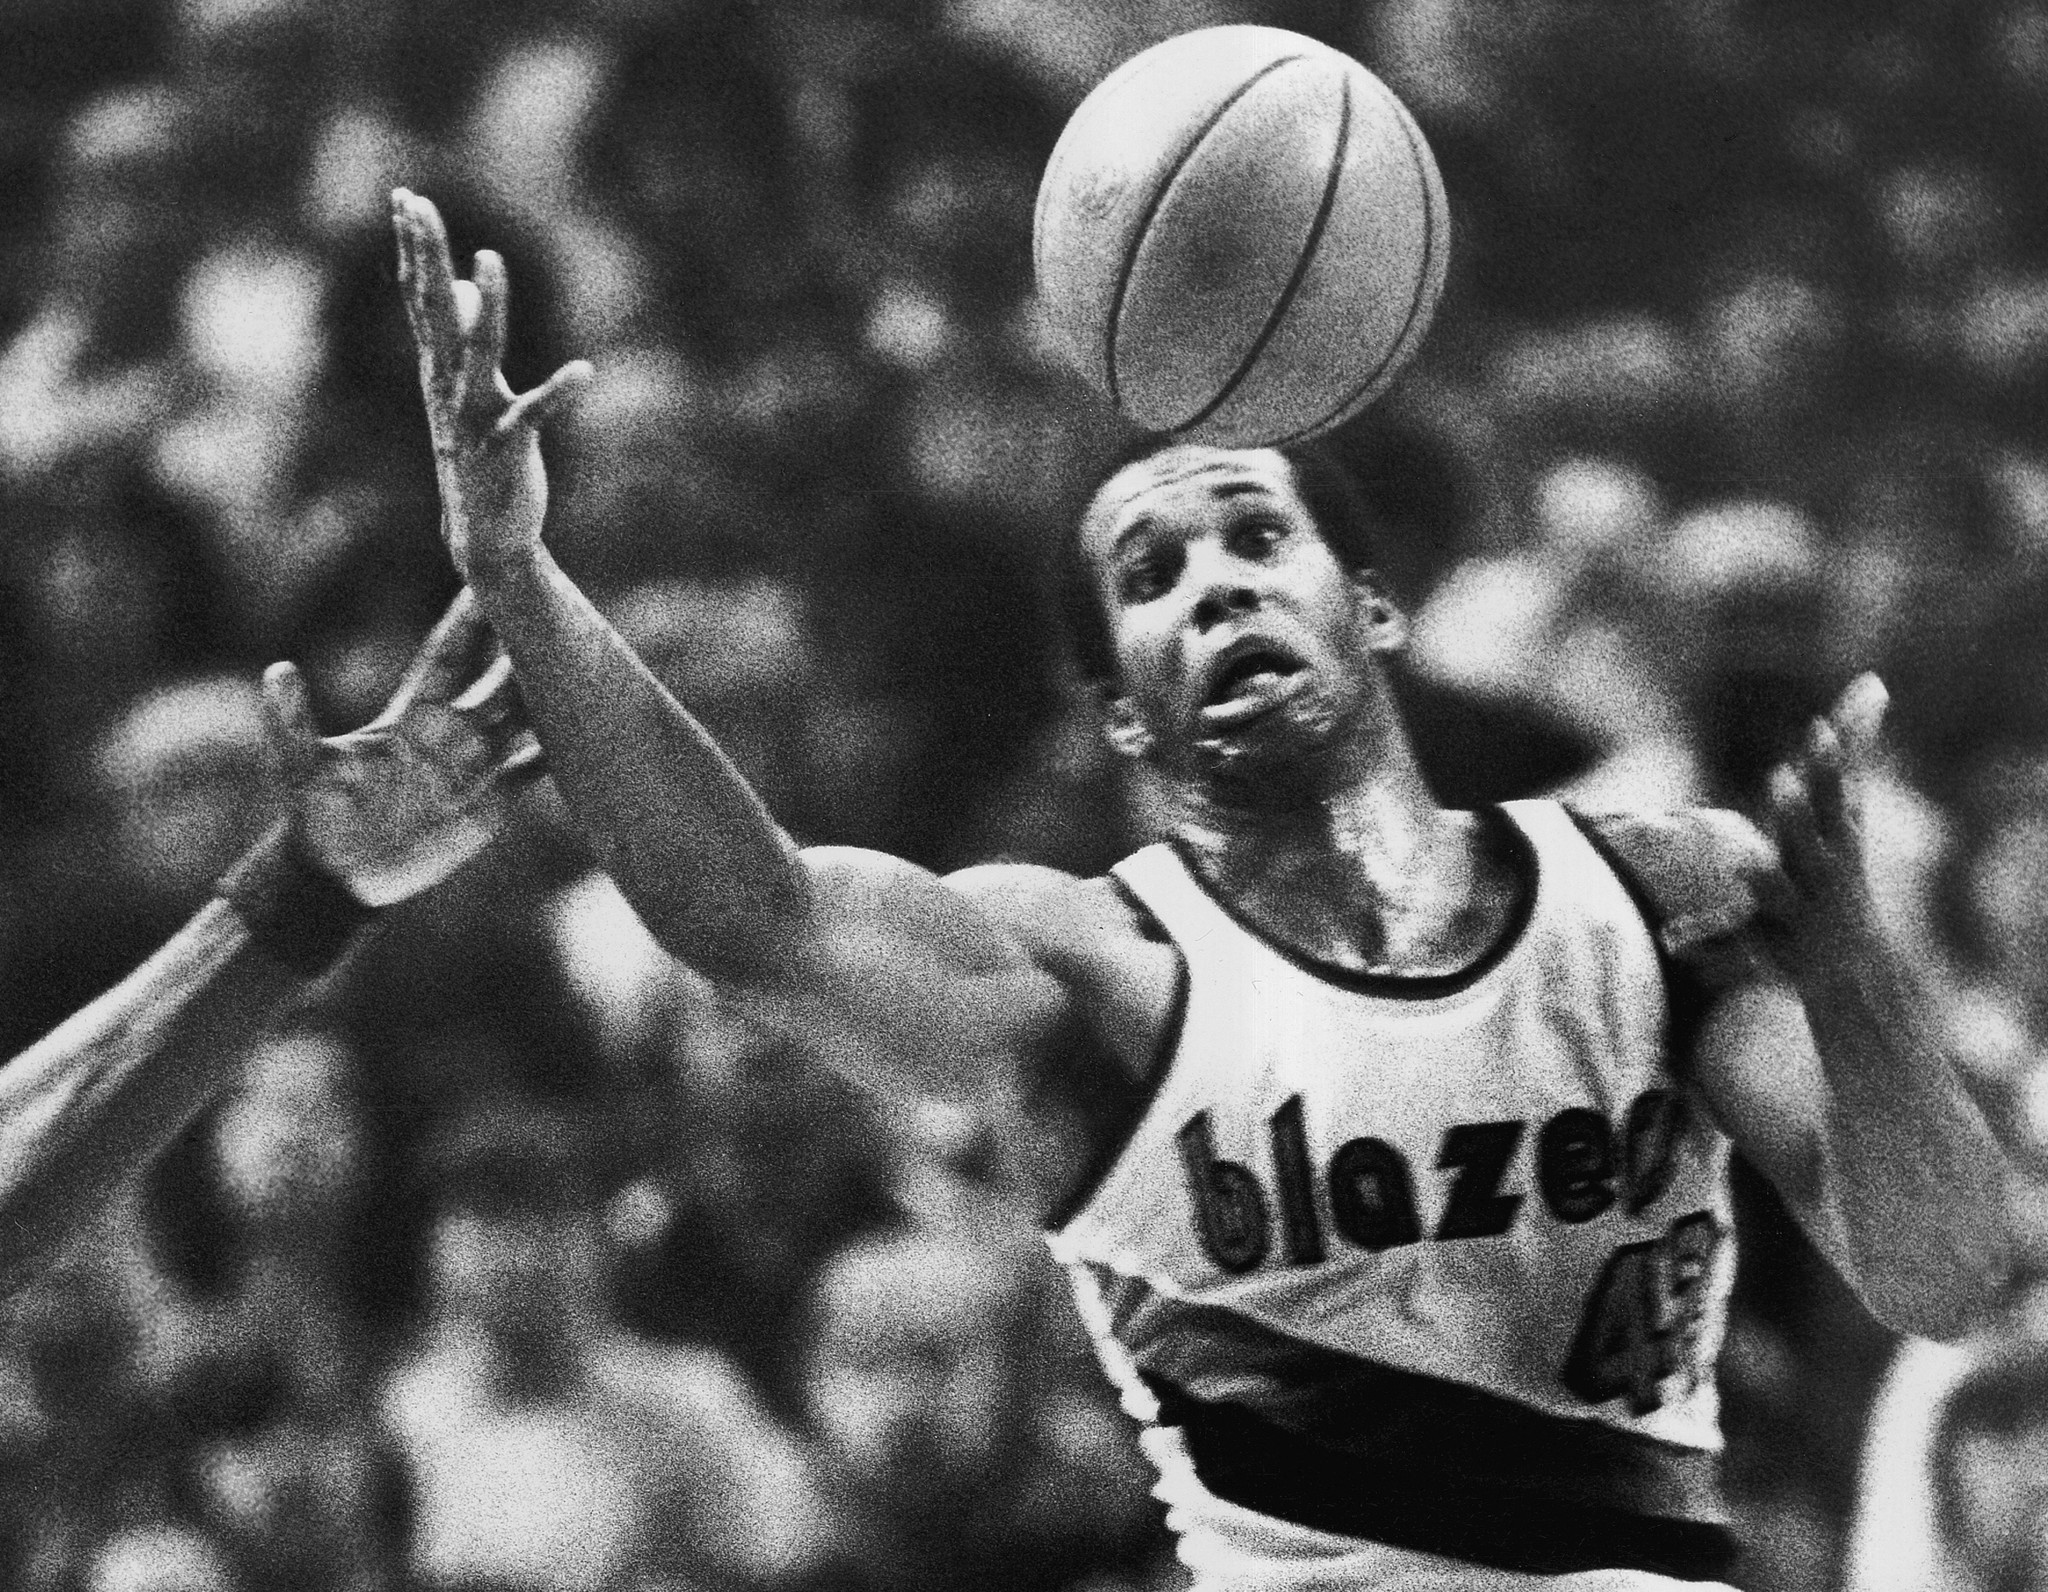 Former NBA player Kermit Washington accused of stealing from his